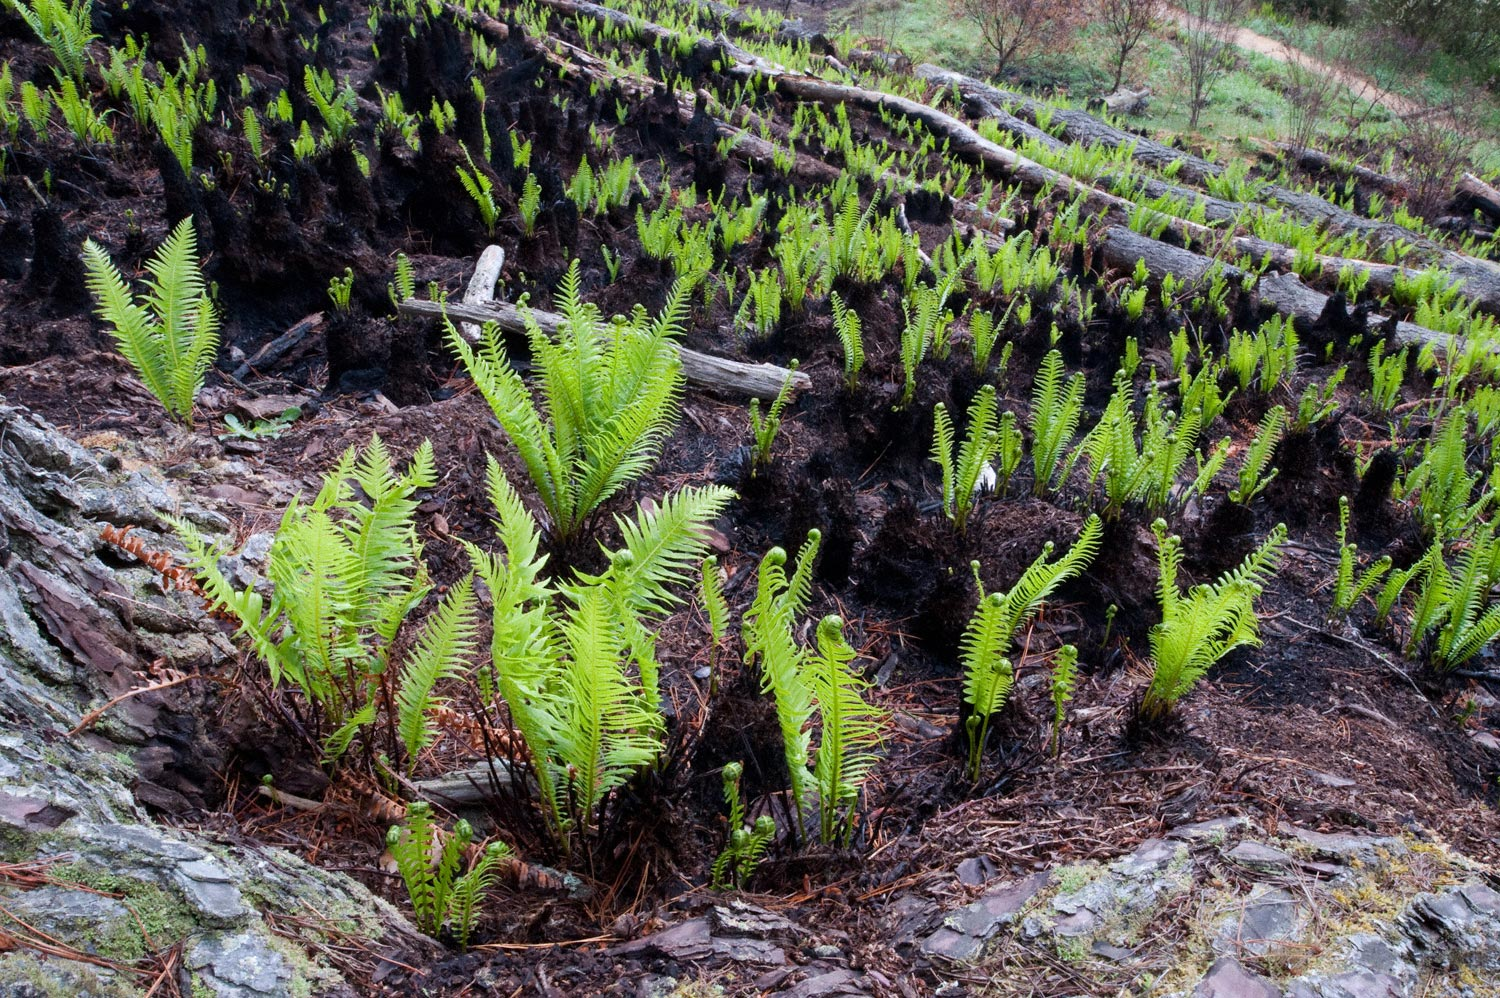 Warren-Hinder-LR-Ferns-after-the-Fires-Charles-Darwin-Walk.jpg